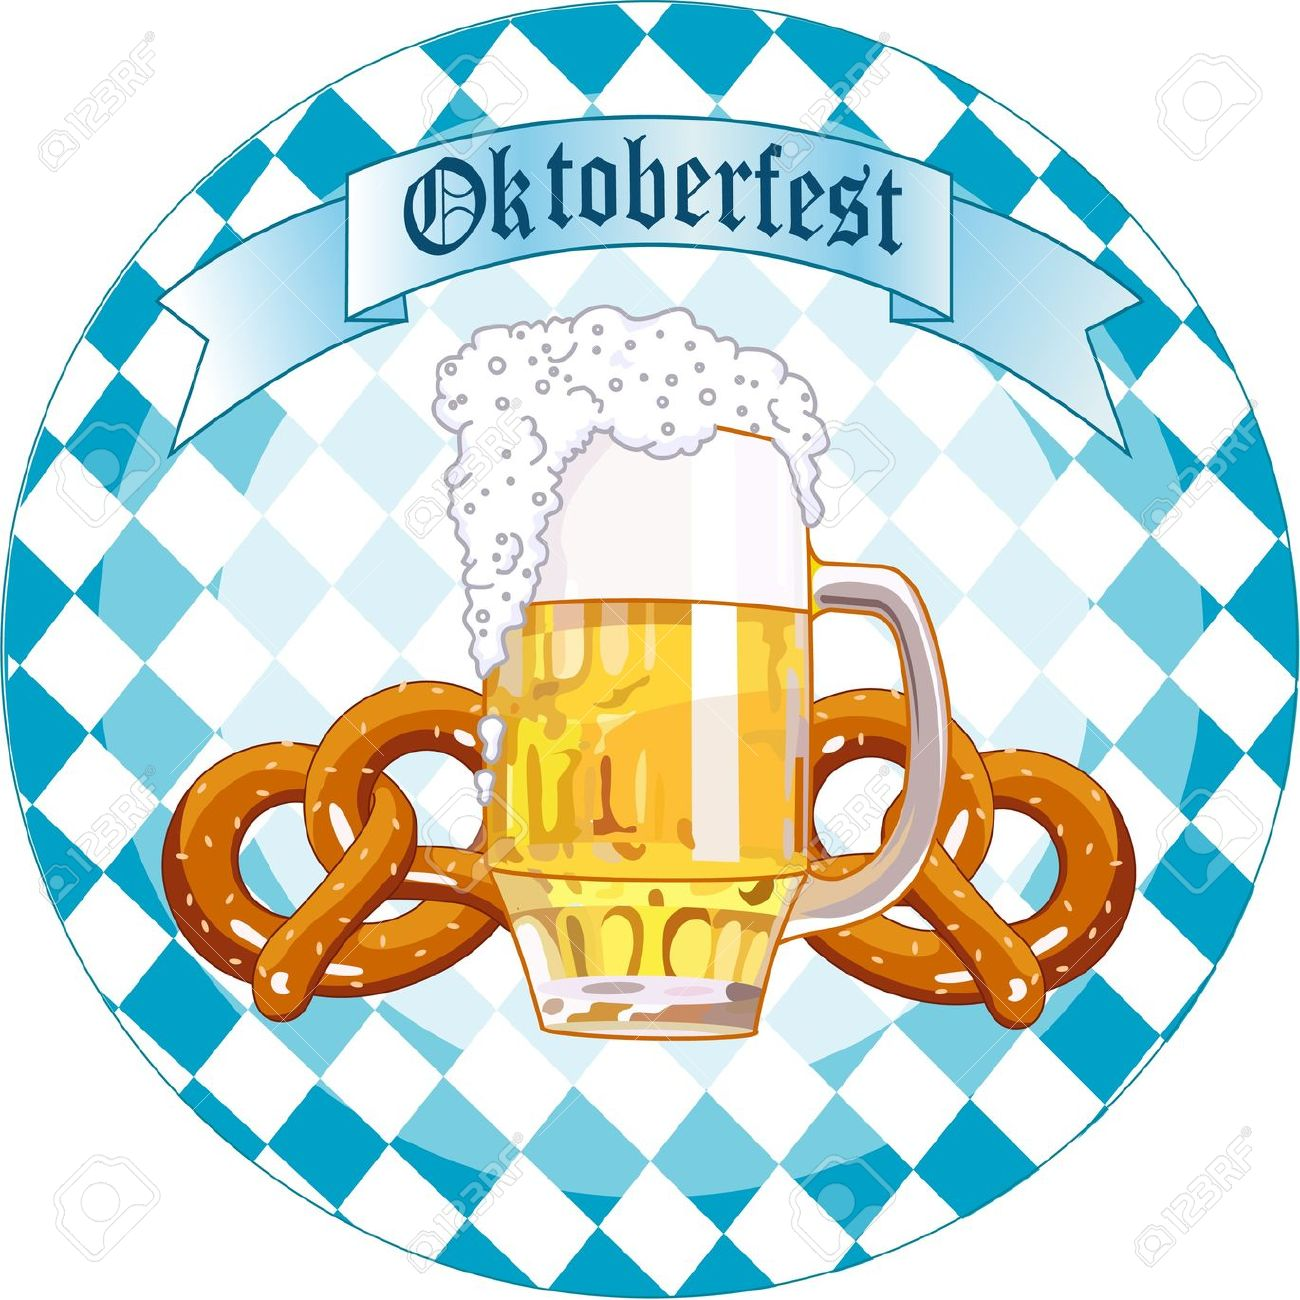 Round Oktoberfest Celebration Design With Beer And Pretzel Royalty.